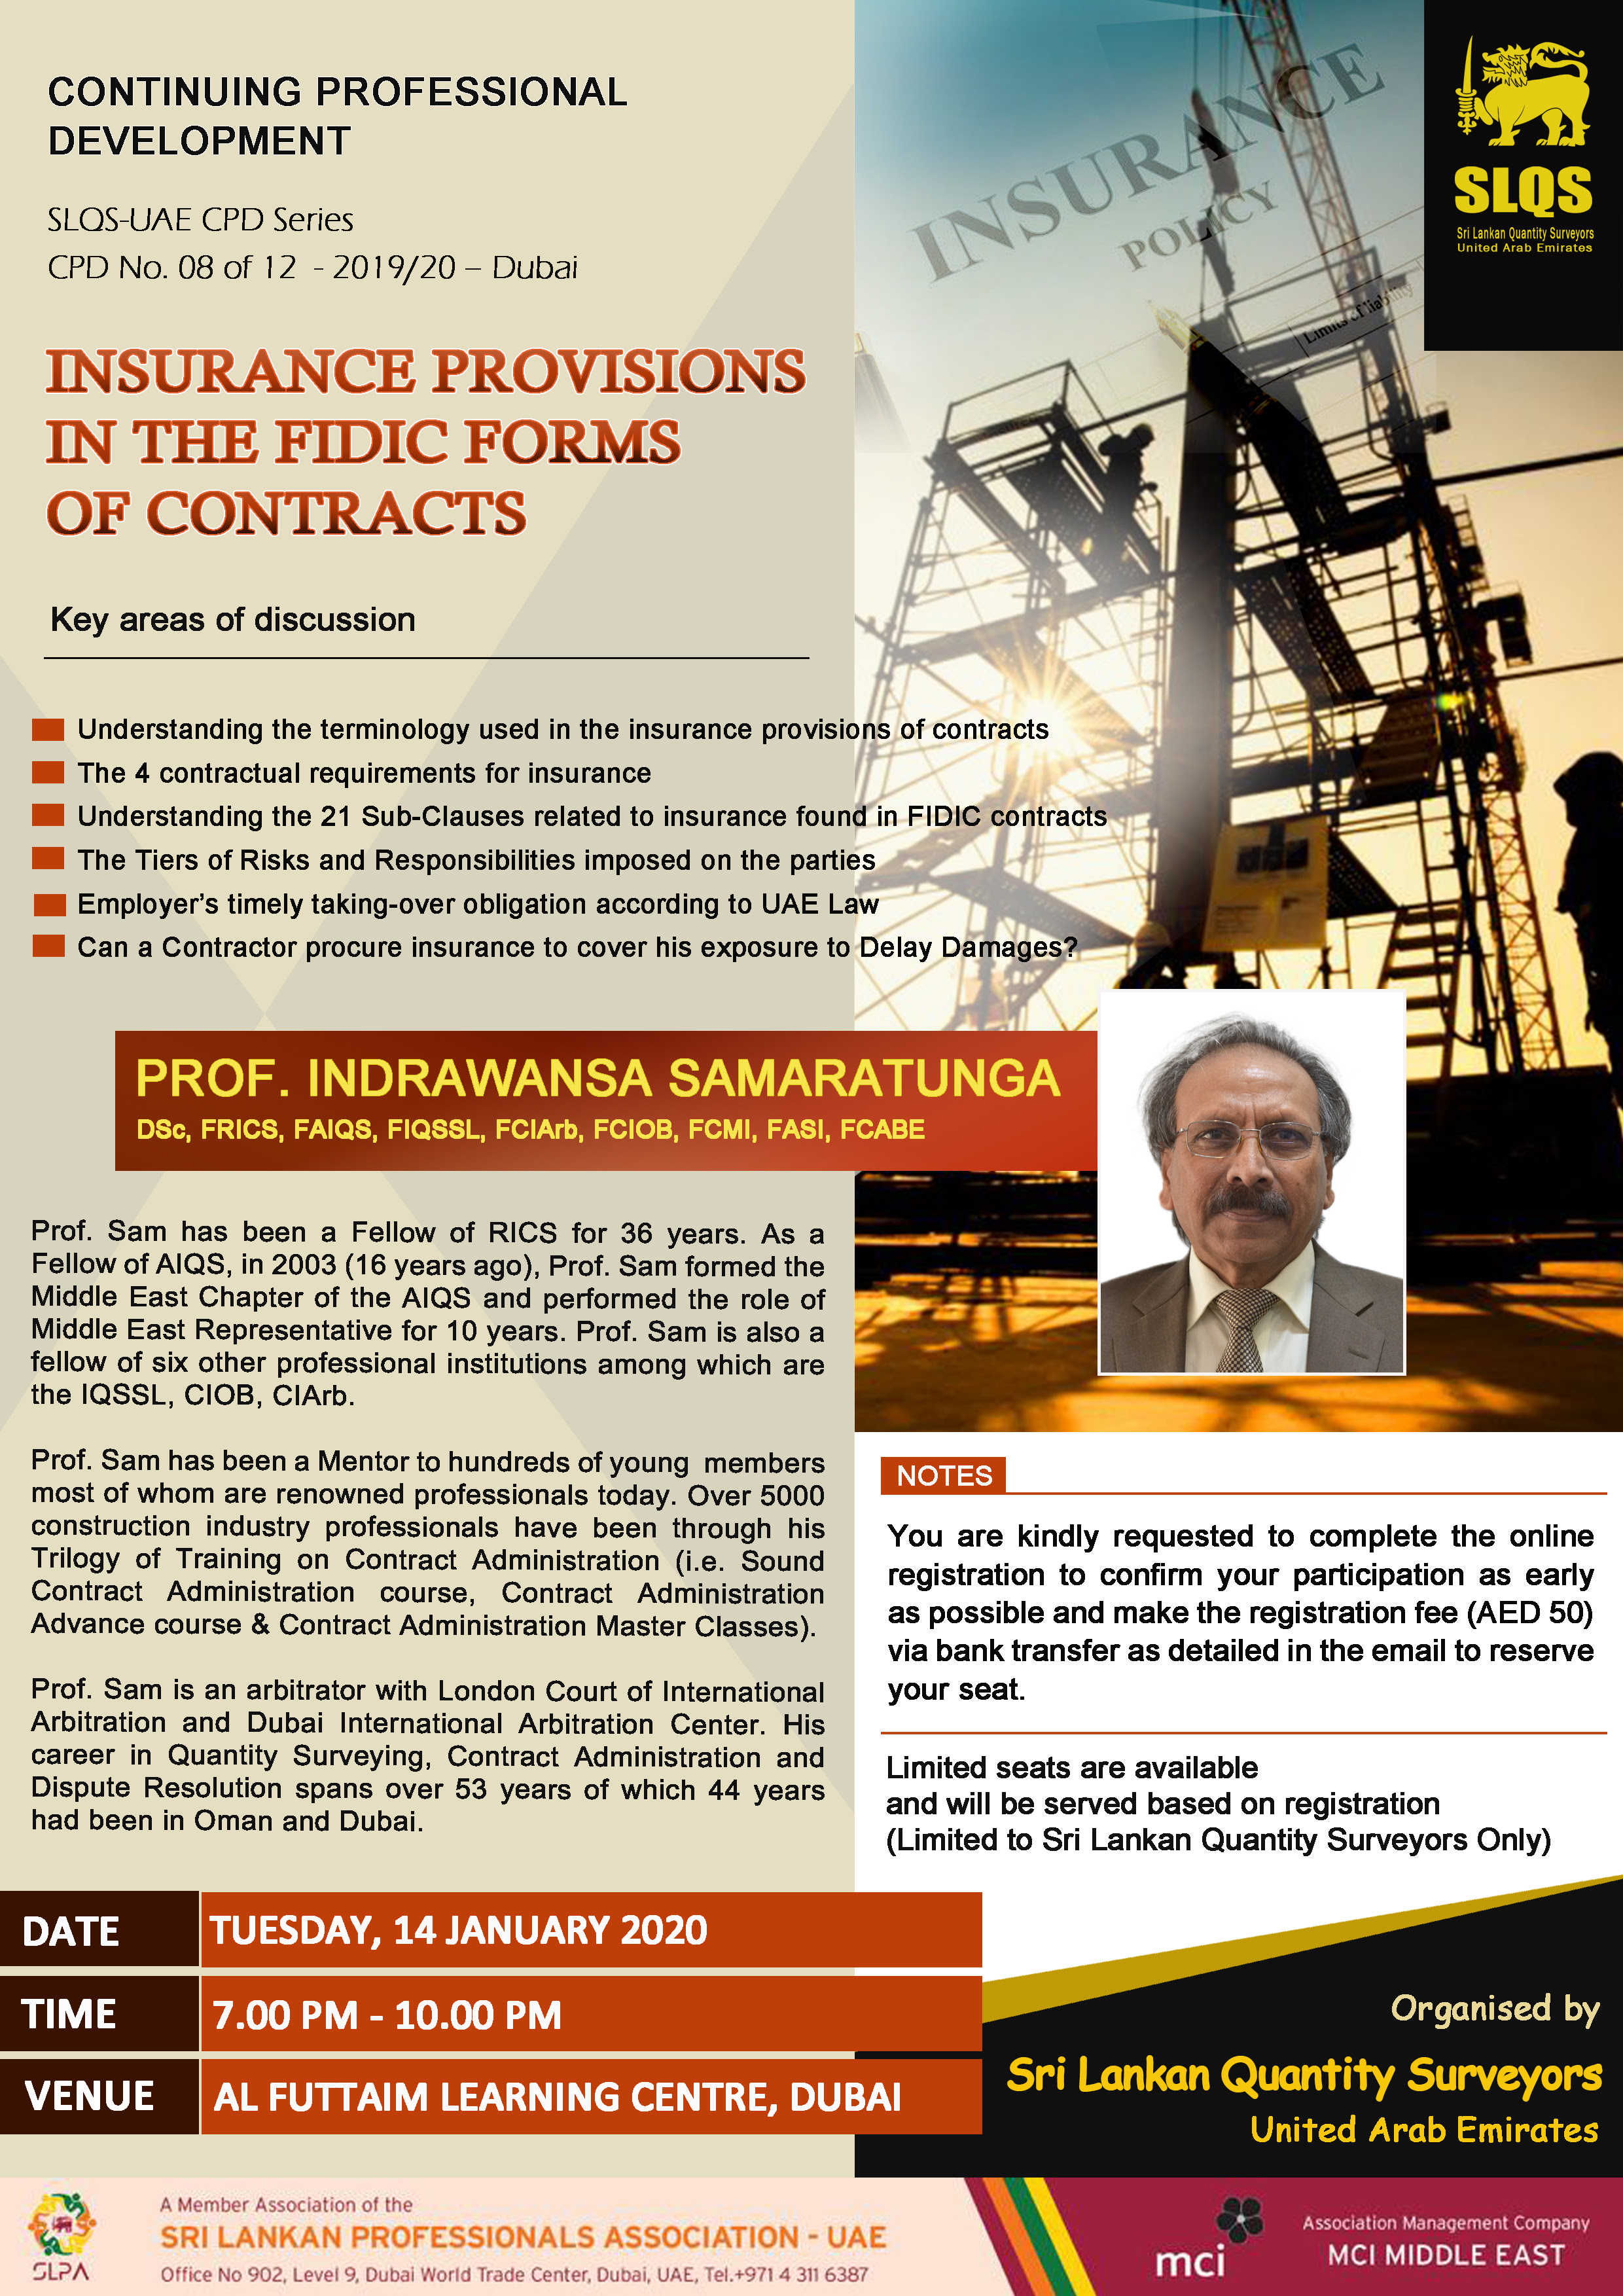 Insurance Provisions Under FIDIC forms of Contracts